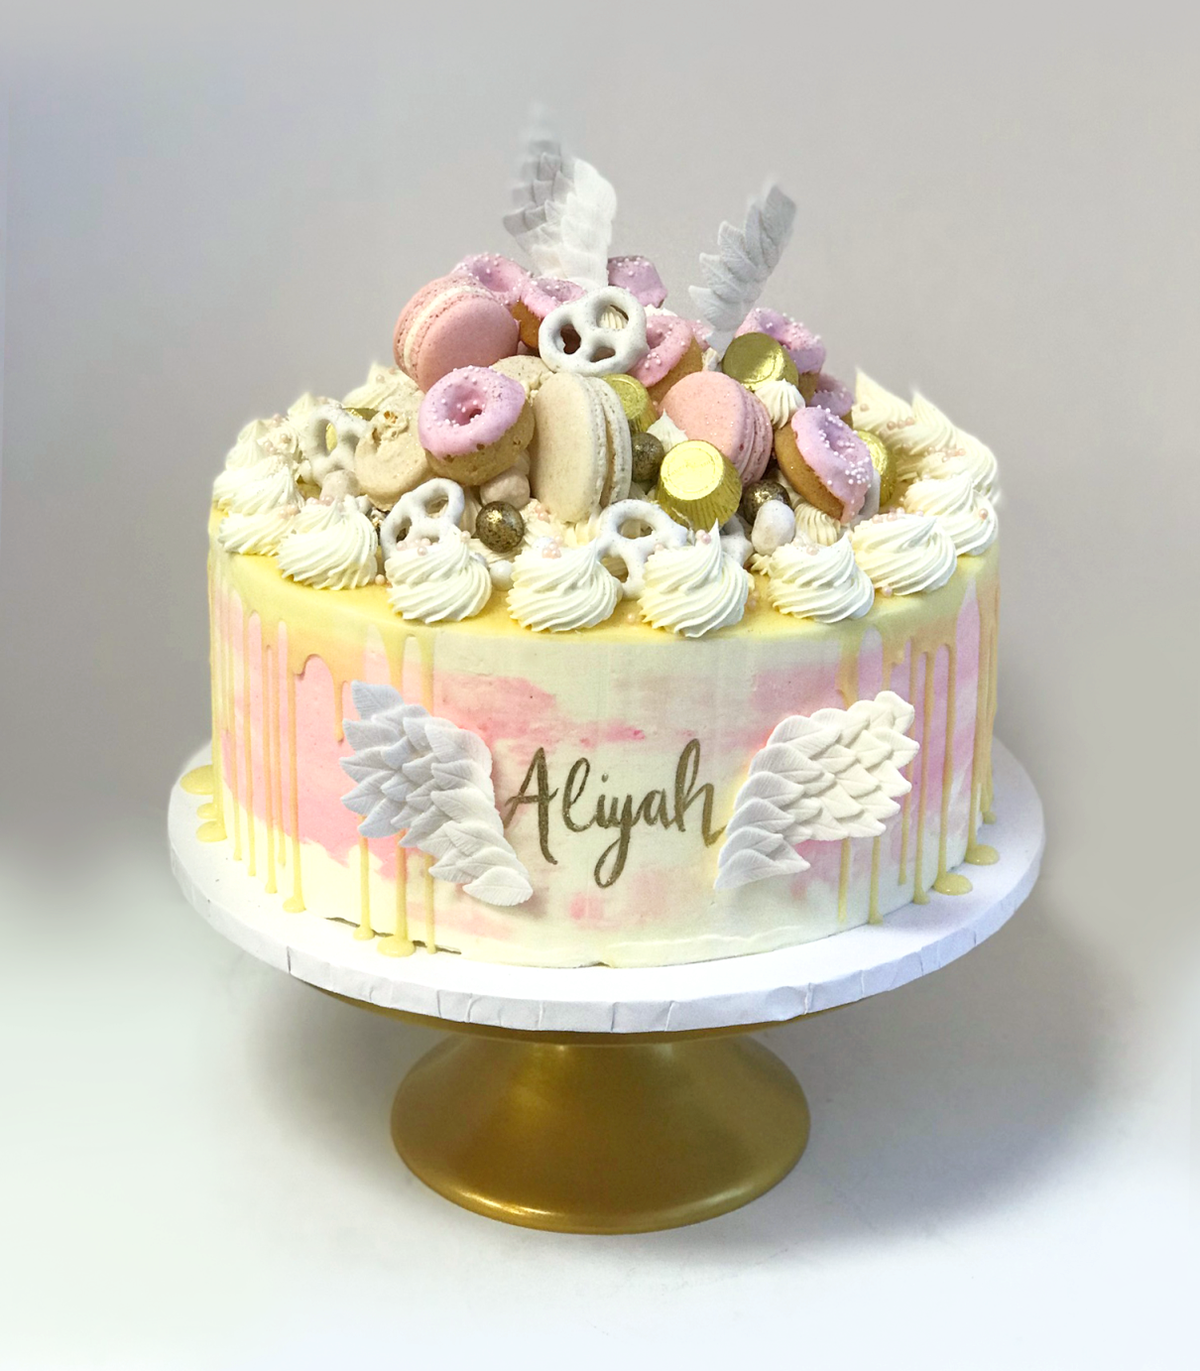 Whippt Desserts - Angel Cake June 2018